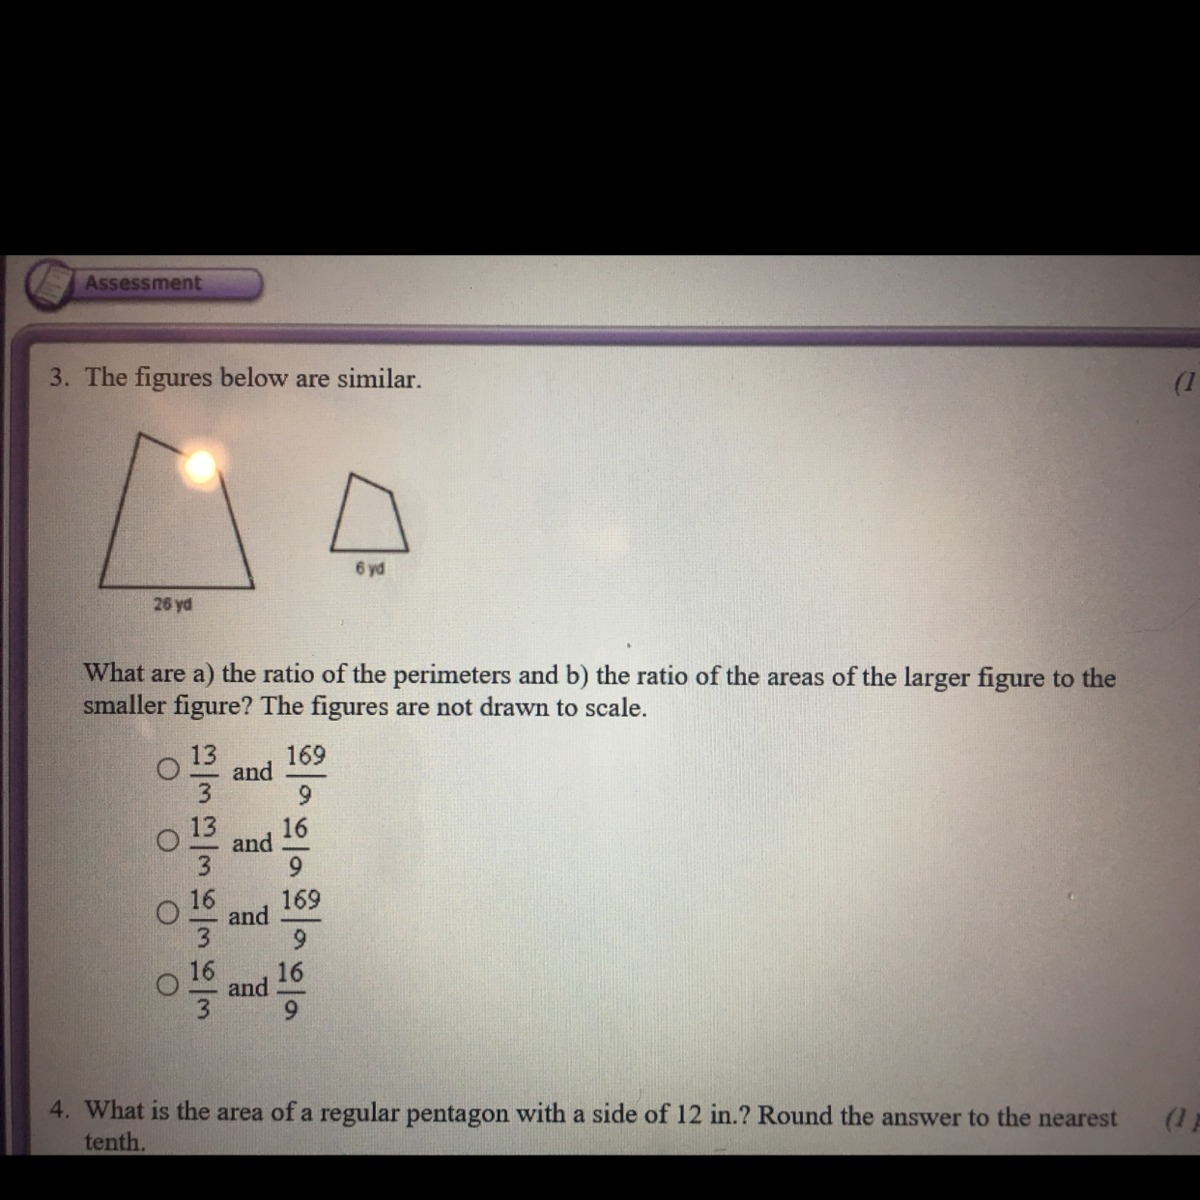 What Are A The Ratio Of The Perimeter S B And The Ratio